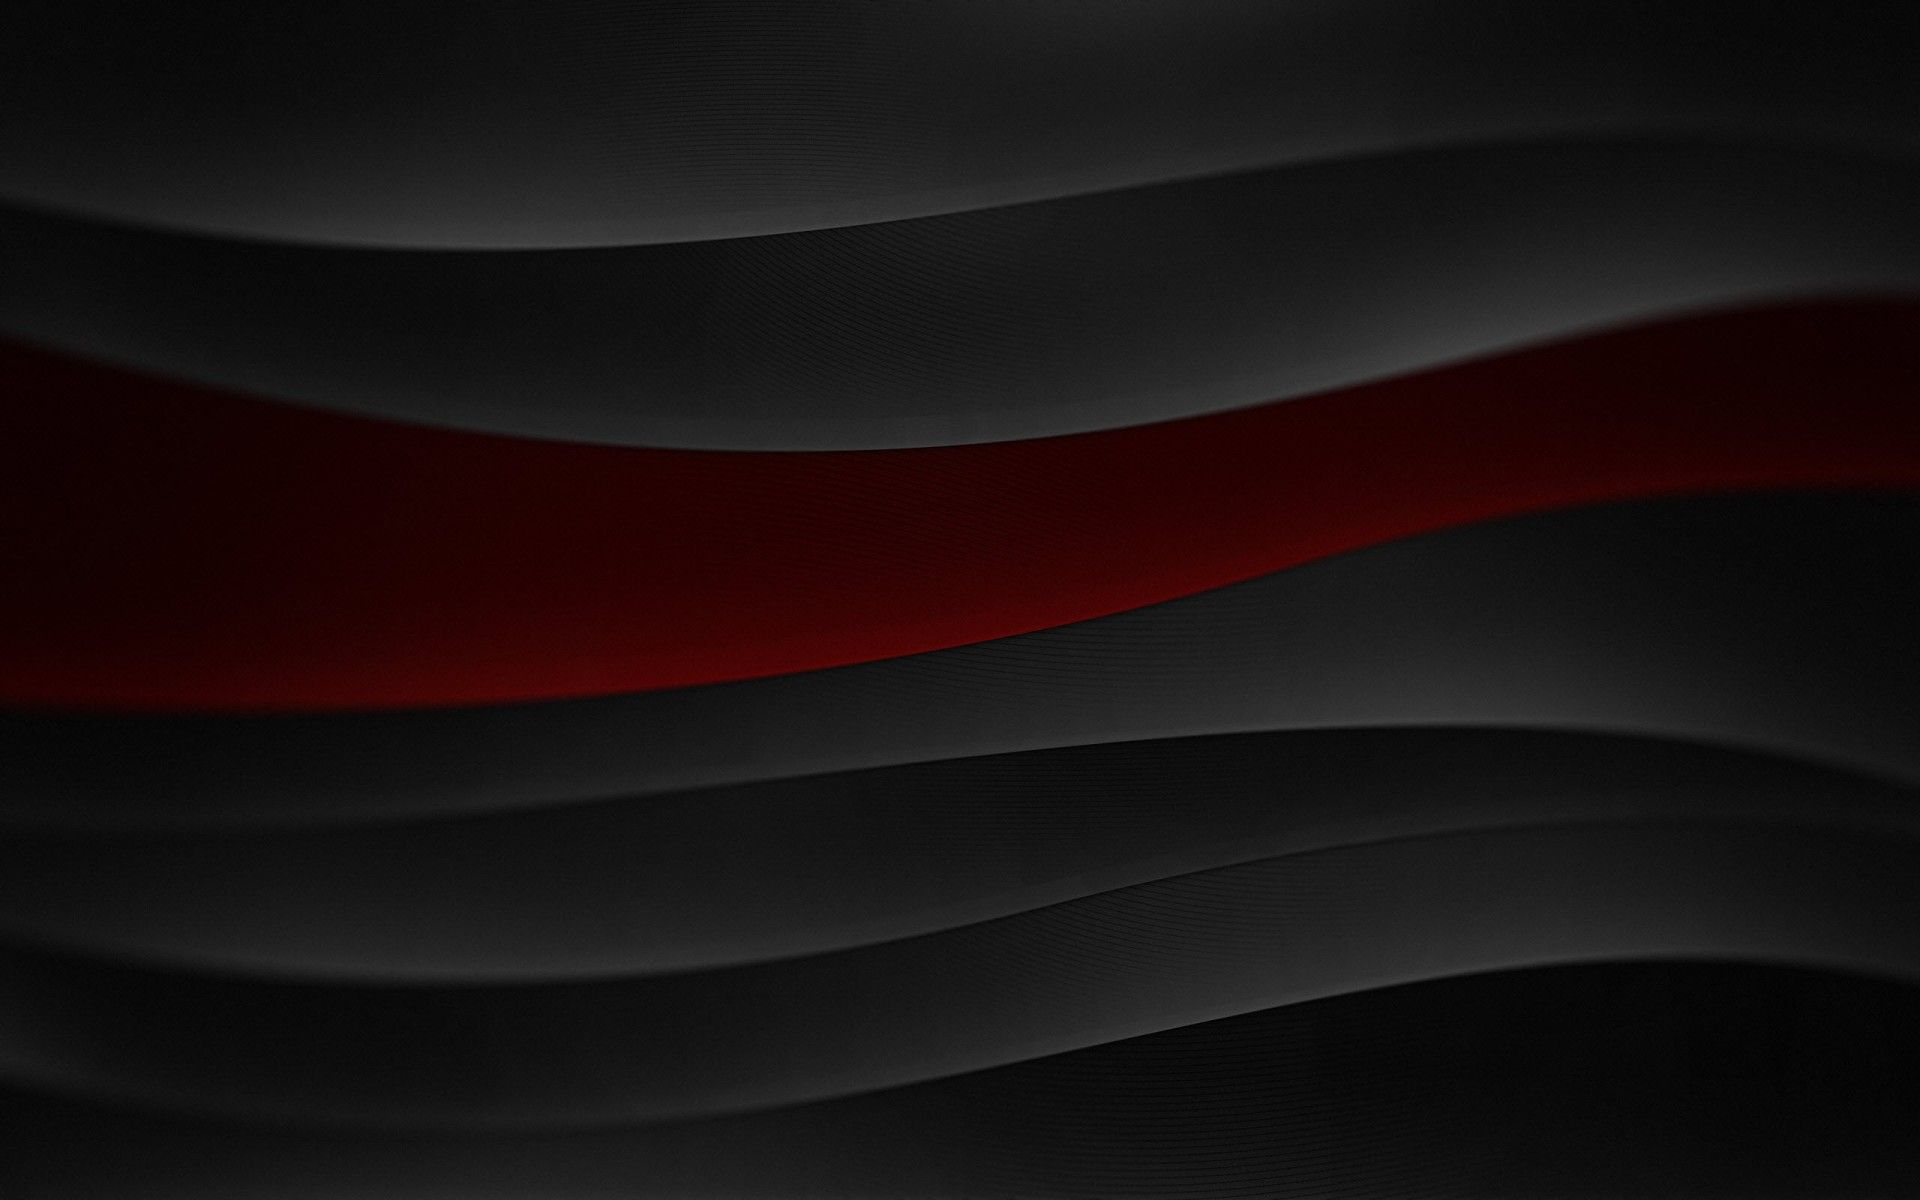 Black And Red Wallpapers HD - Wallpaper Cave